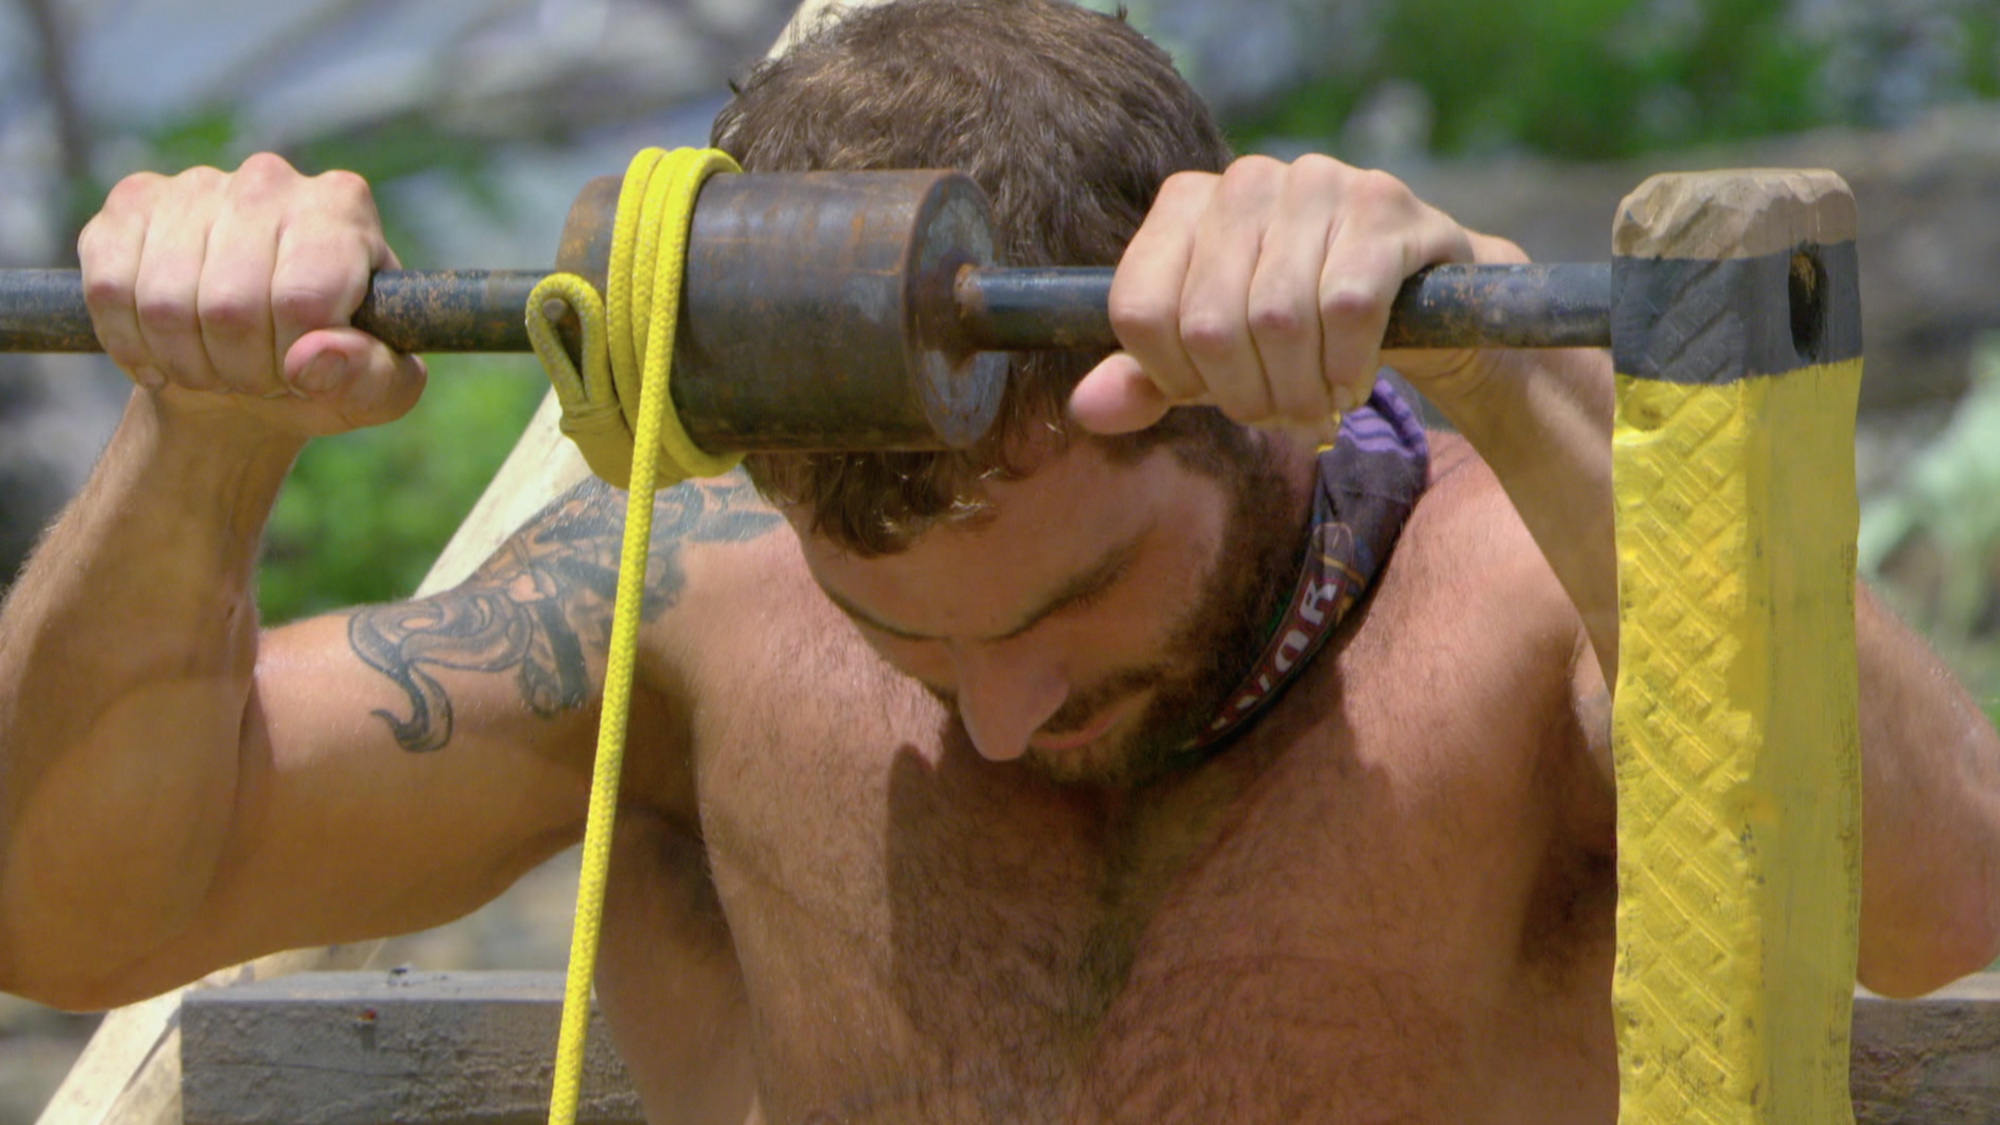 Rodney tries to focus on the challenge